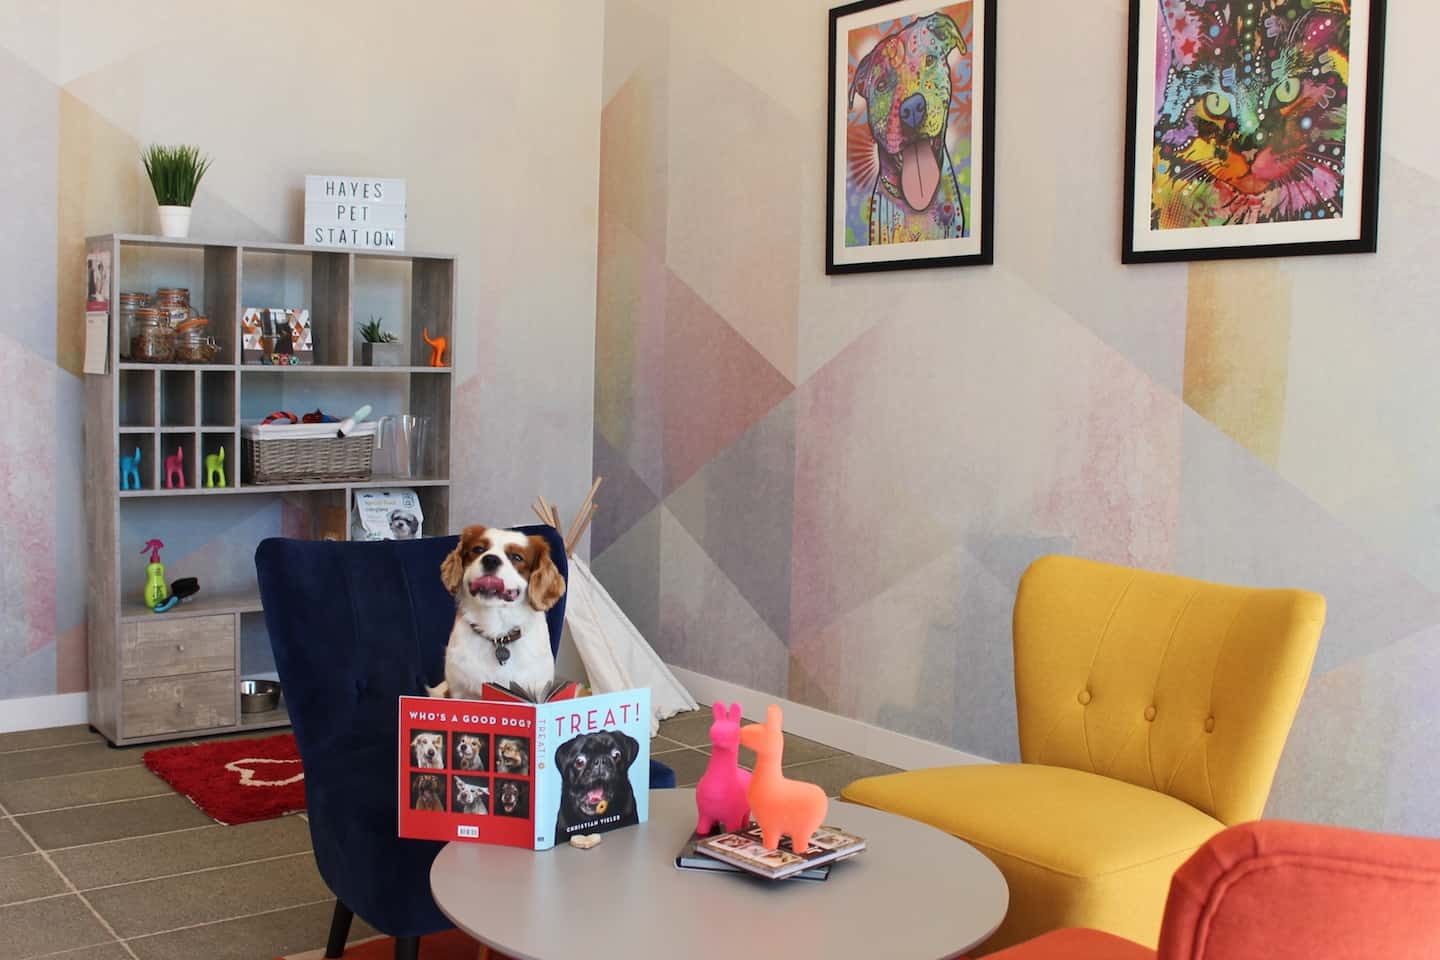 How Renting a Flat With a Dog in London Is Easy with Fizzy Living - Milo the Cavalier at the Pet Station